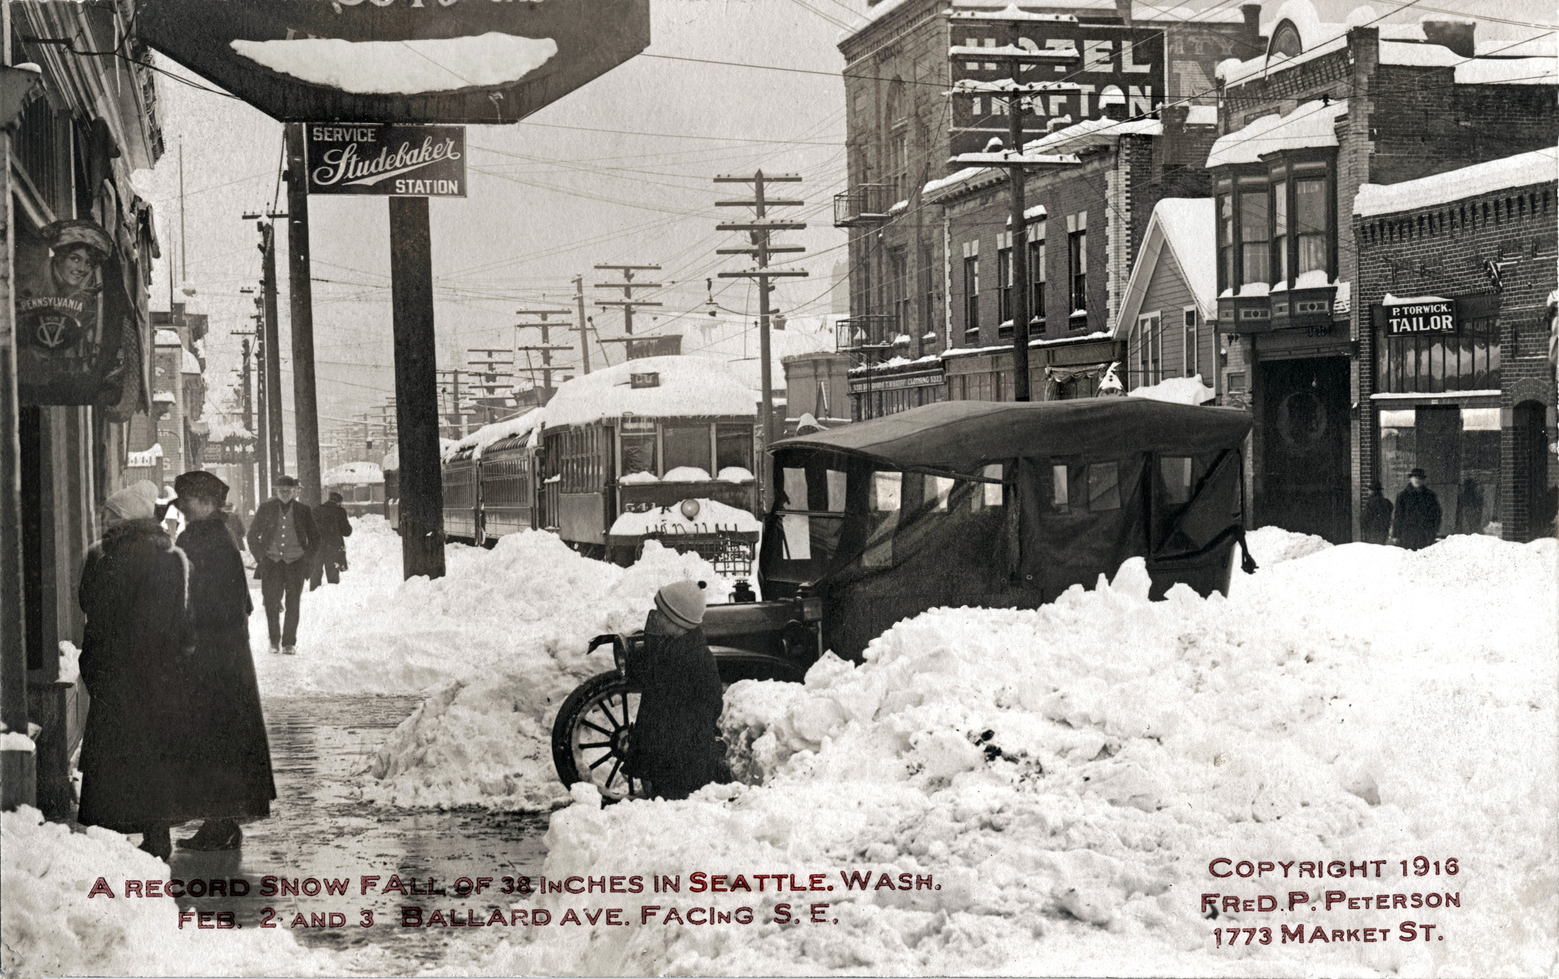 Seattle streets in snow, 1916